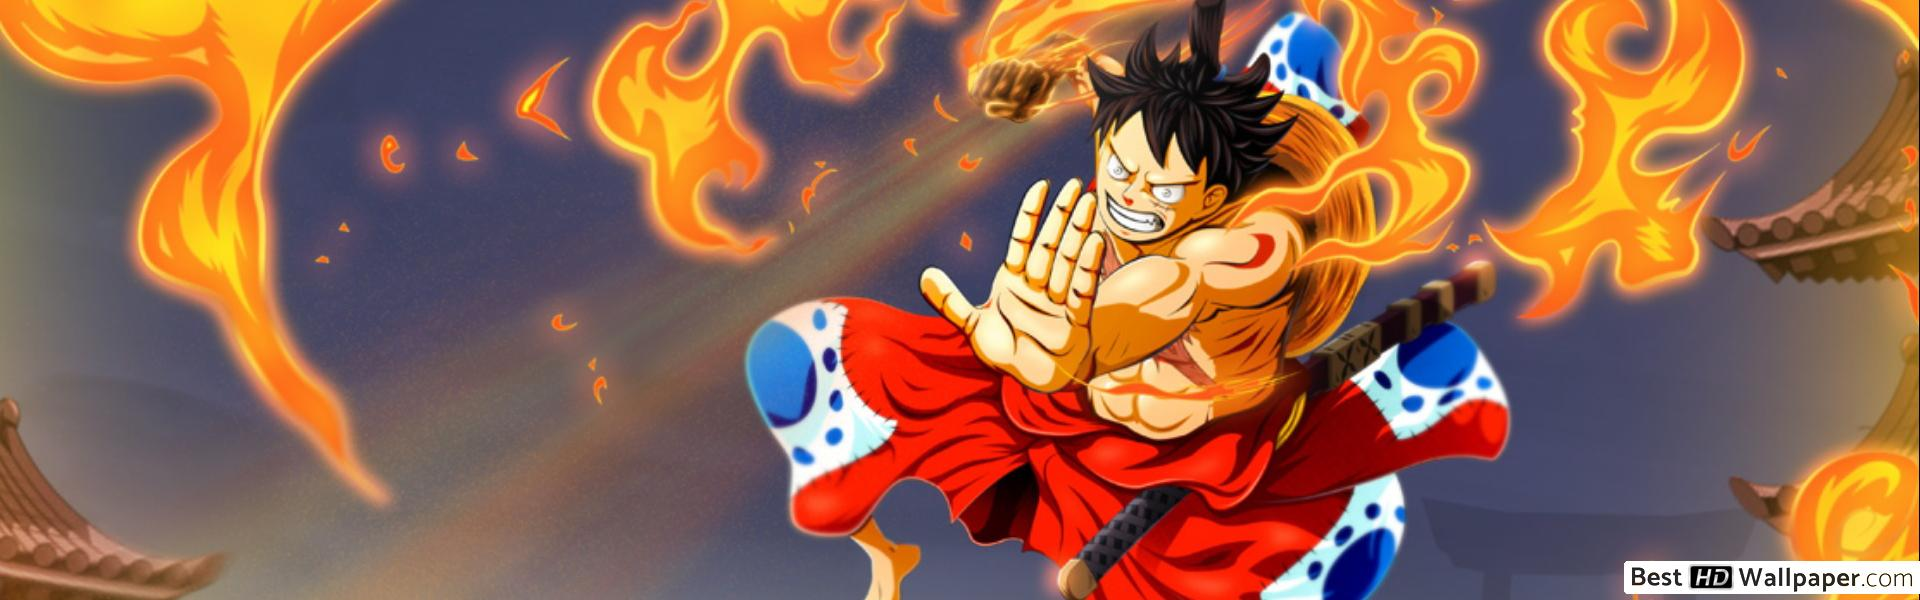 One Piece Dual Monitor Wallpapers Top Free One Piece Dual